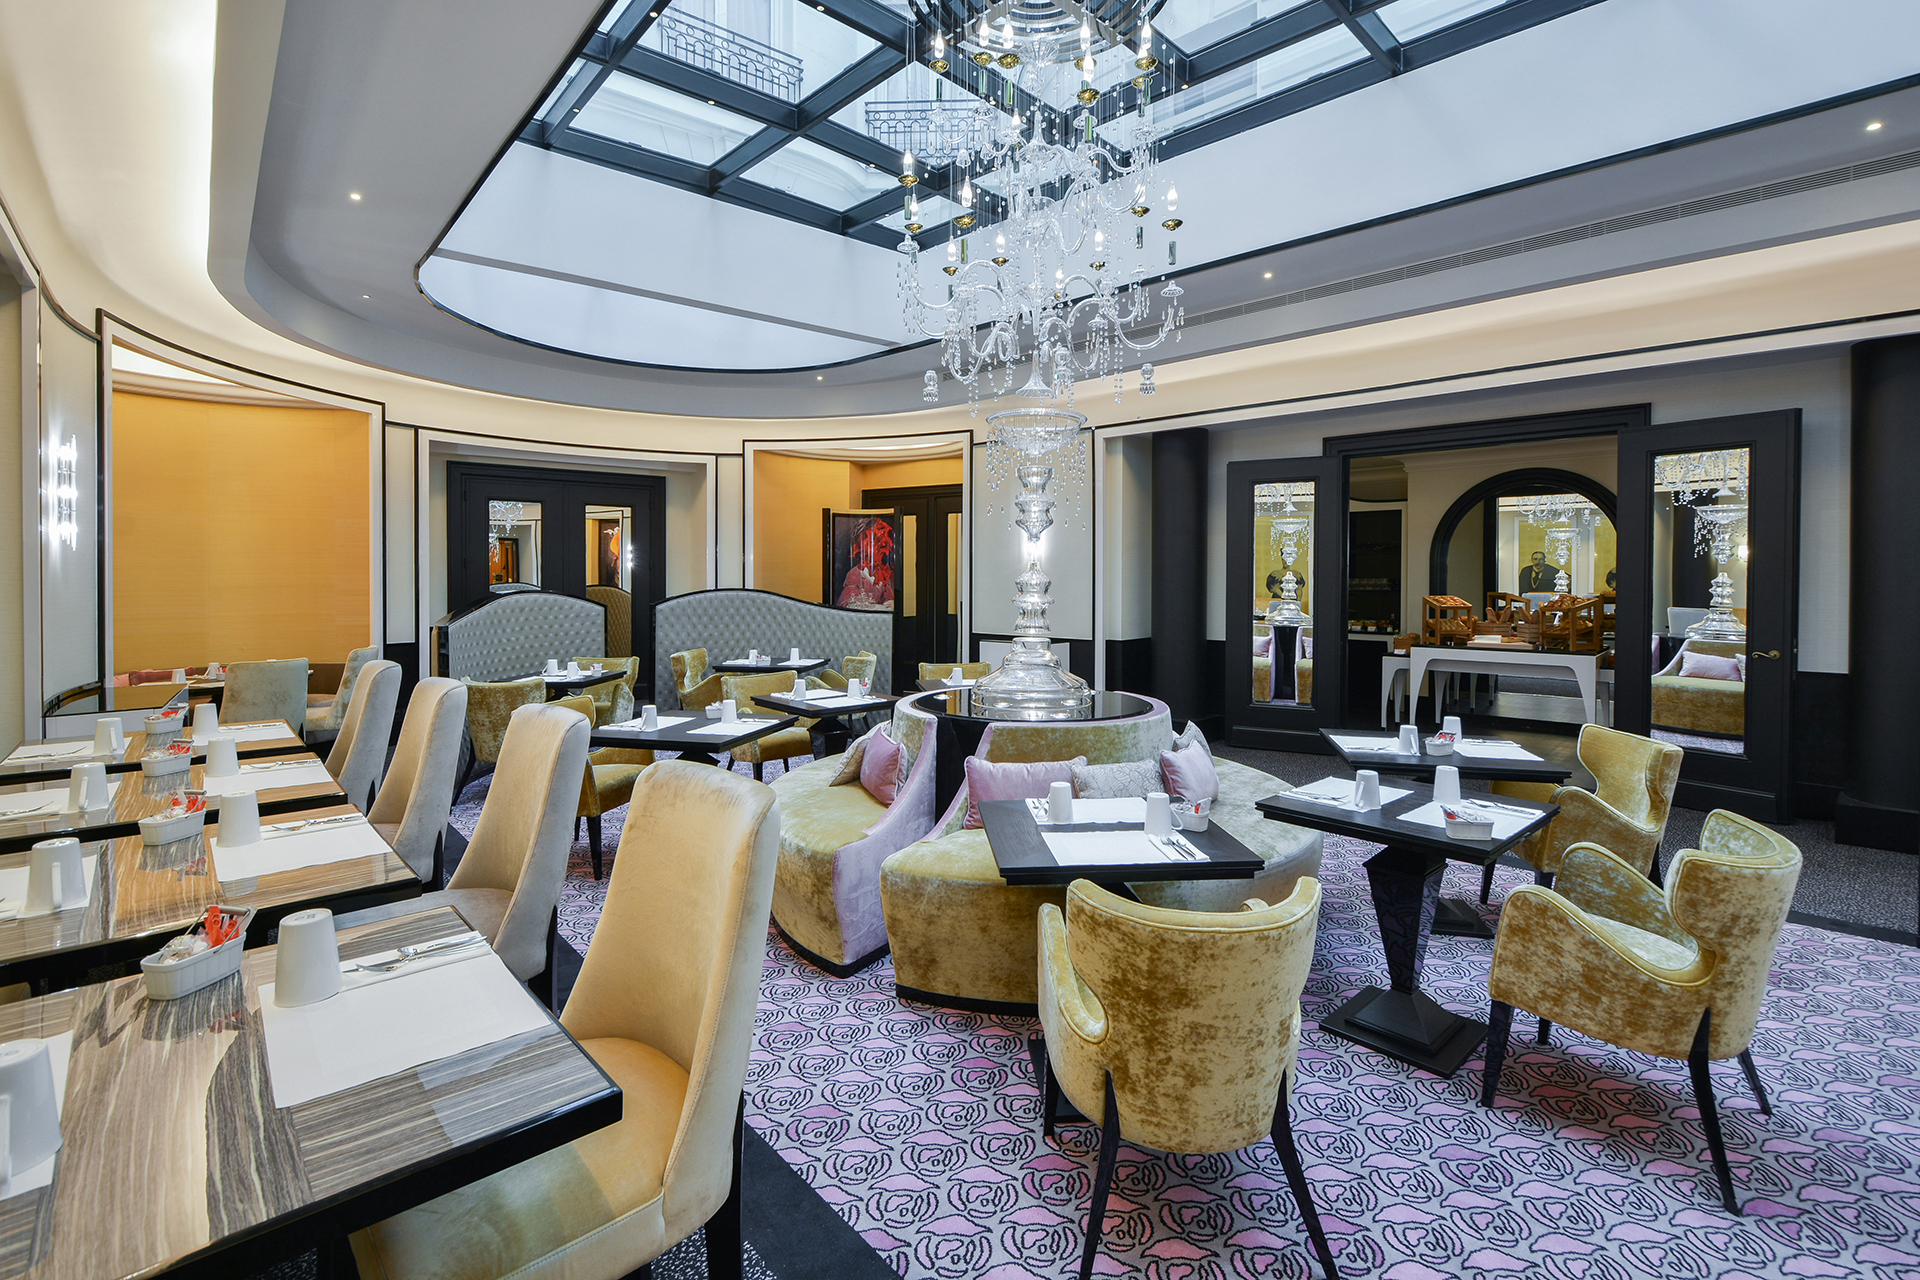 Maison_Astor_Paris_restaurant_3